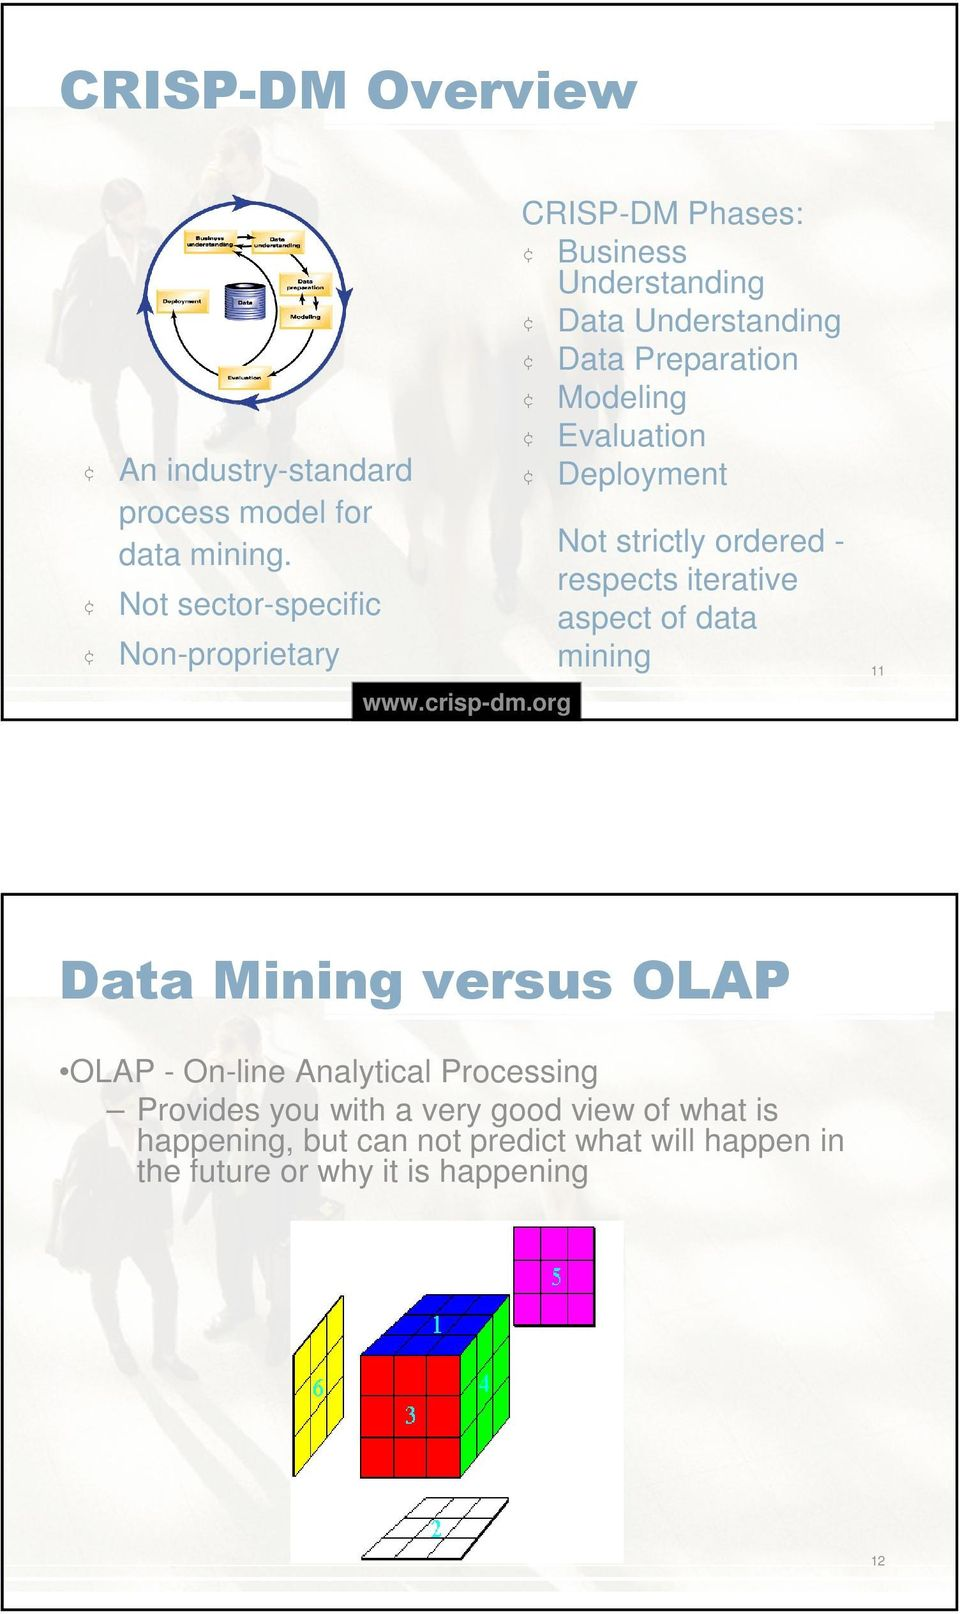 strictly ordered - respects iterative aspect of data mining 11 Data Mining versus OLAP OLAP - On-line Analytical